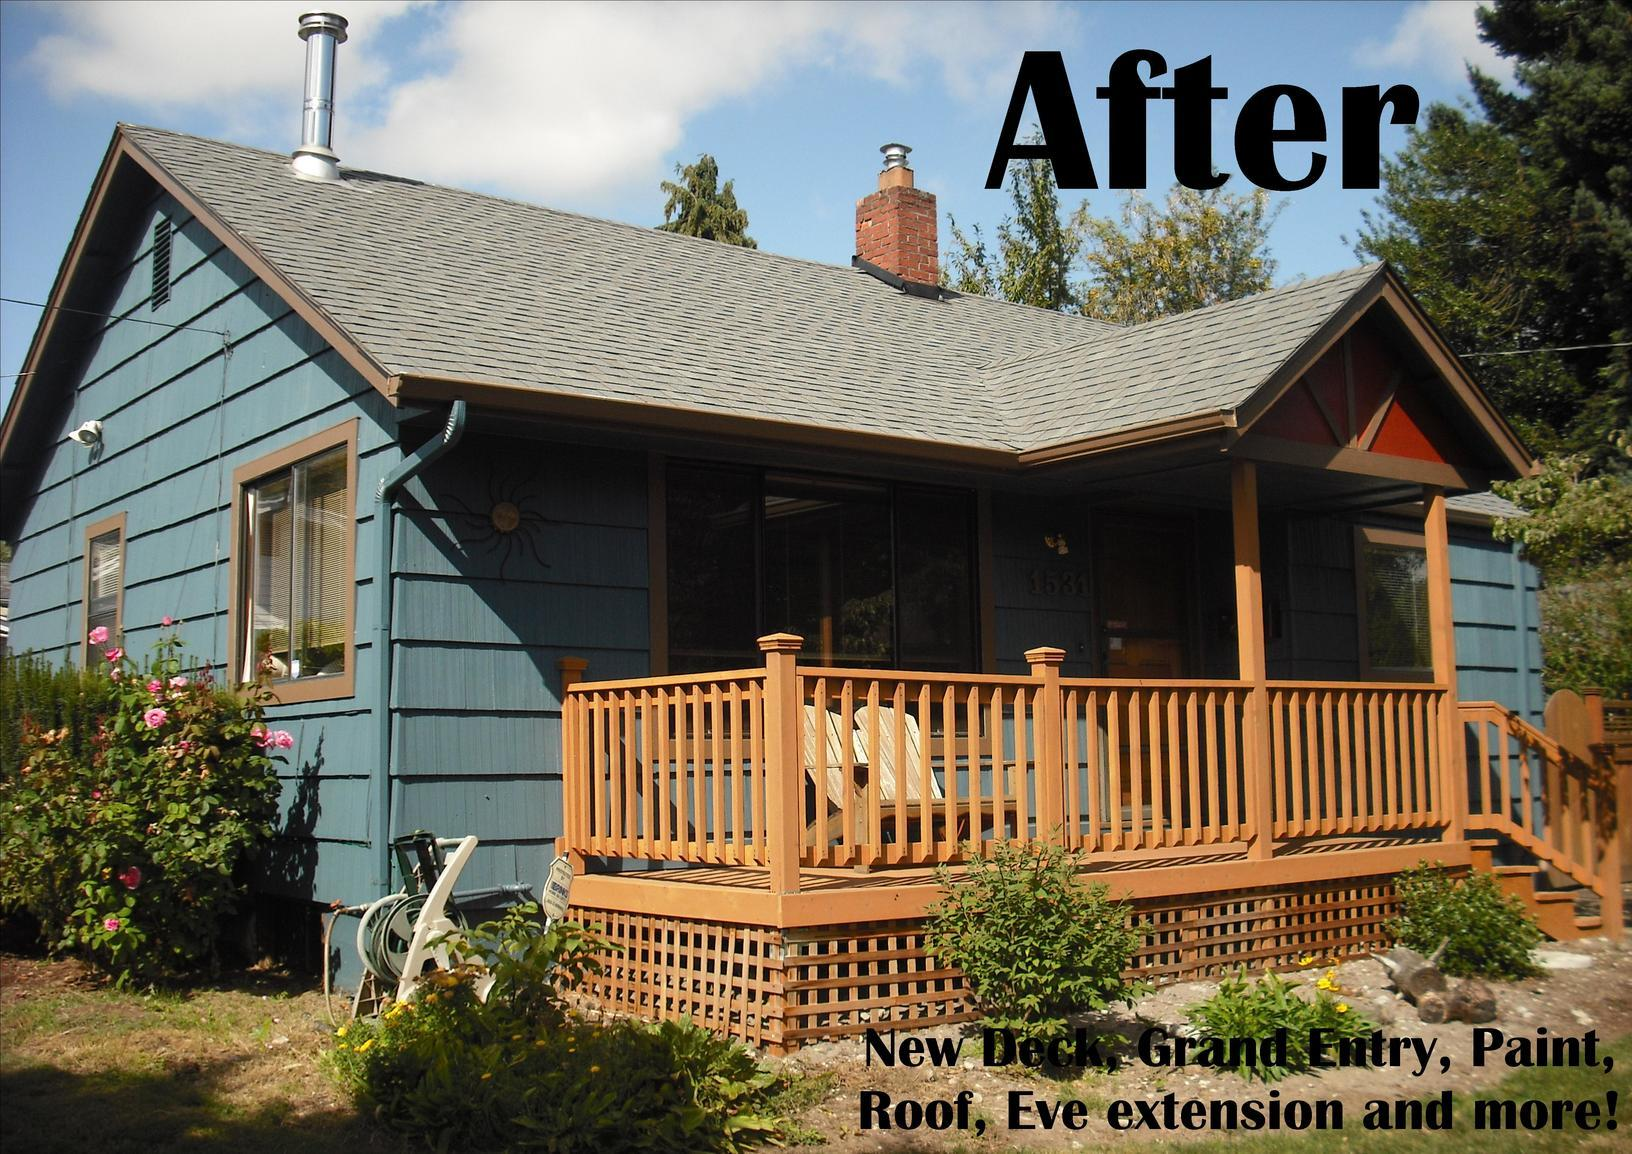 Portland, OR - Exterior Painting and Deck with Patio Cover in Portland, OR - After Photo